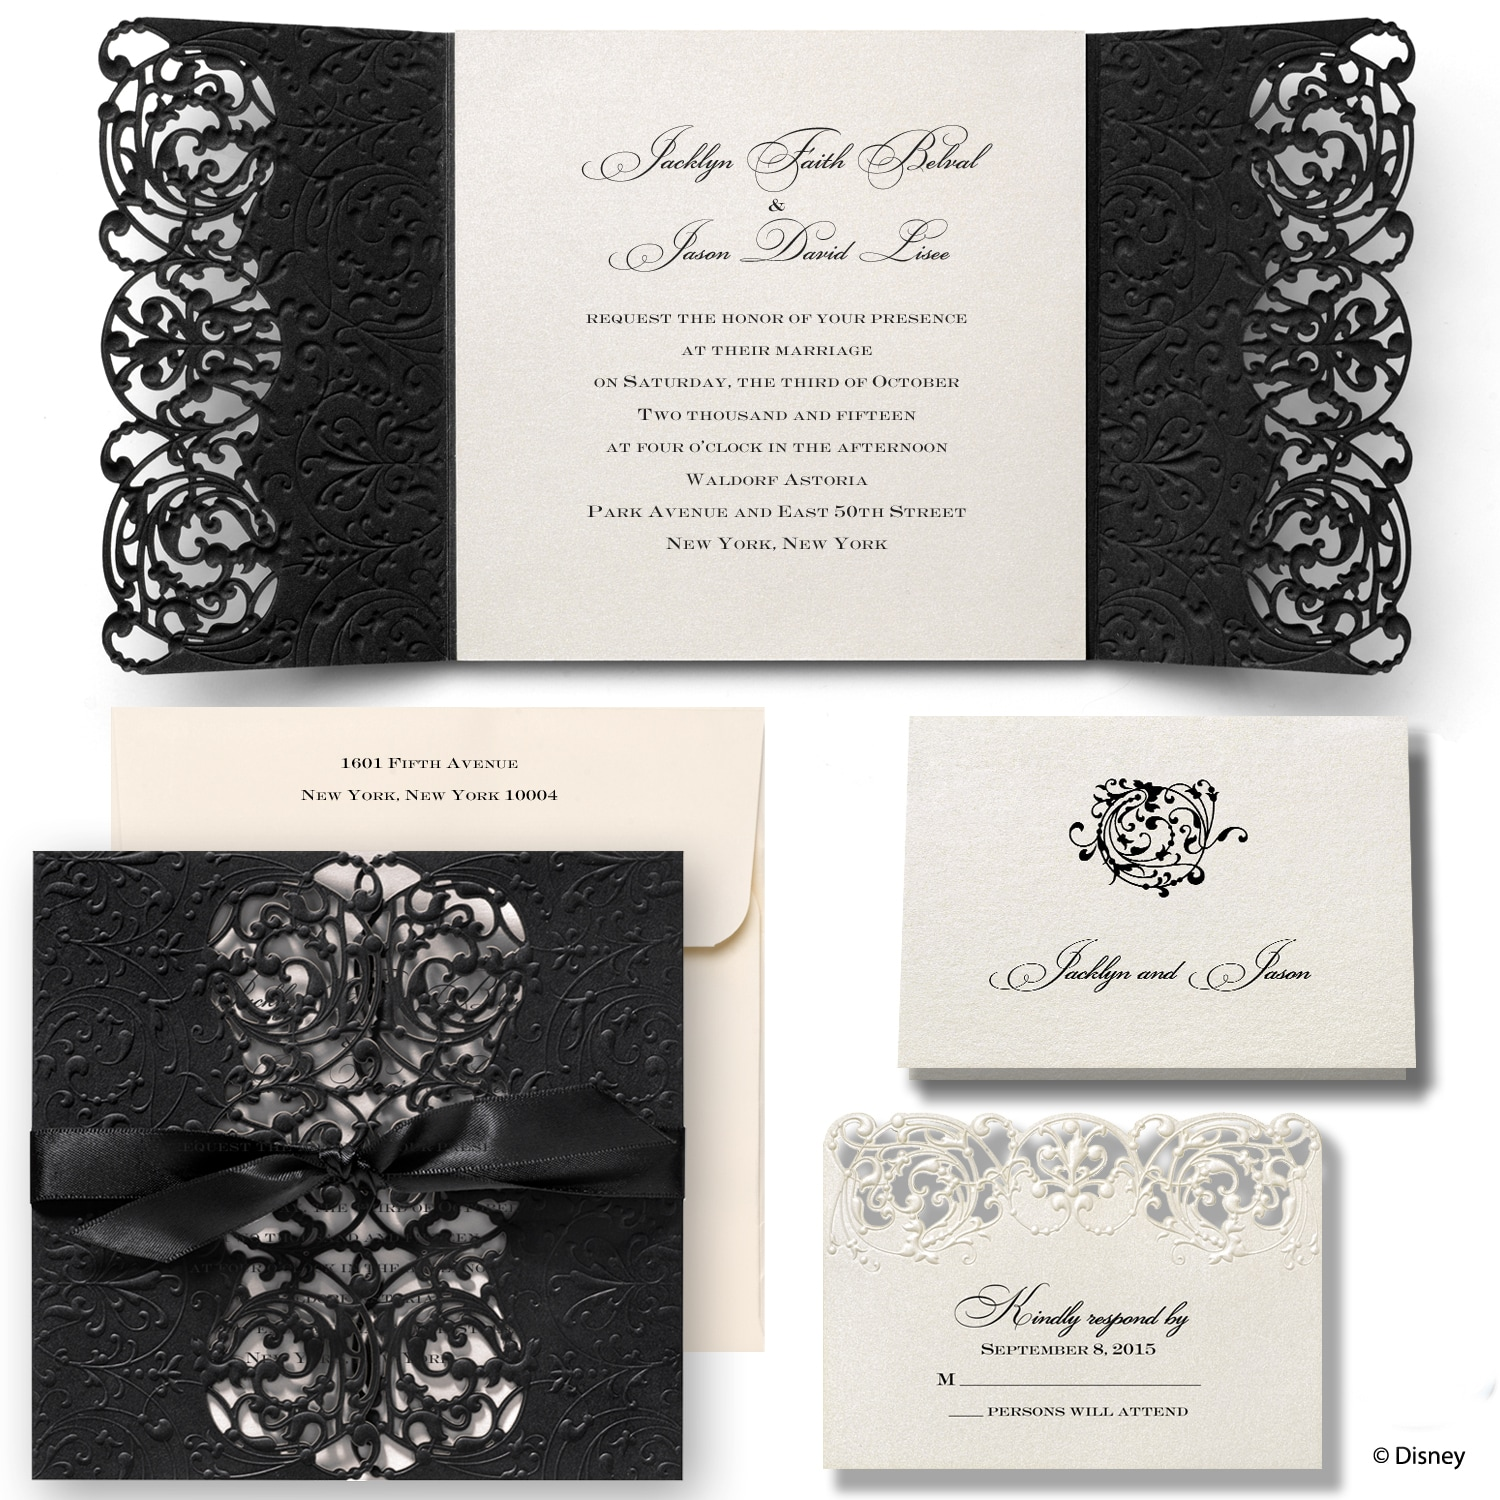 Michaels Custom Wedding Invitations Choice Image Wedding And – Custom Wedding Invitations Canada